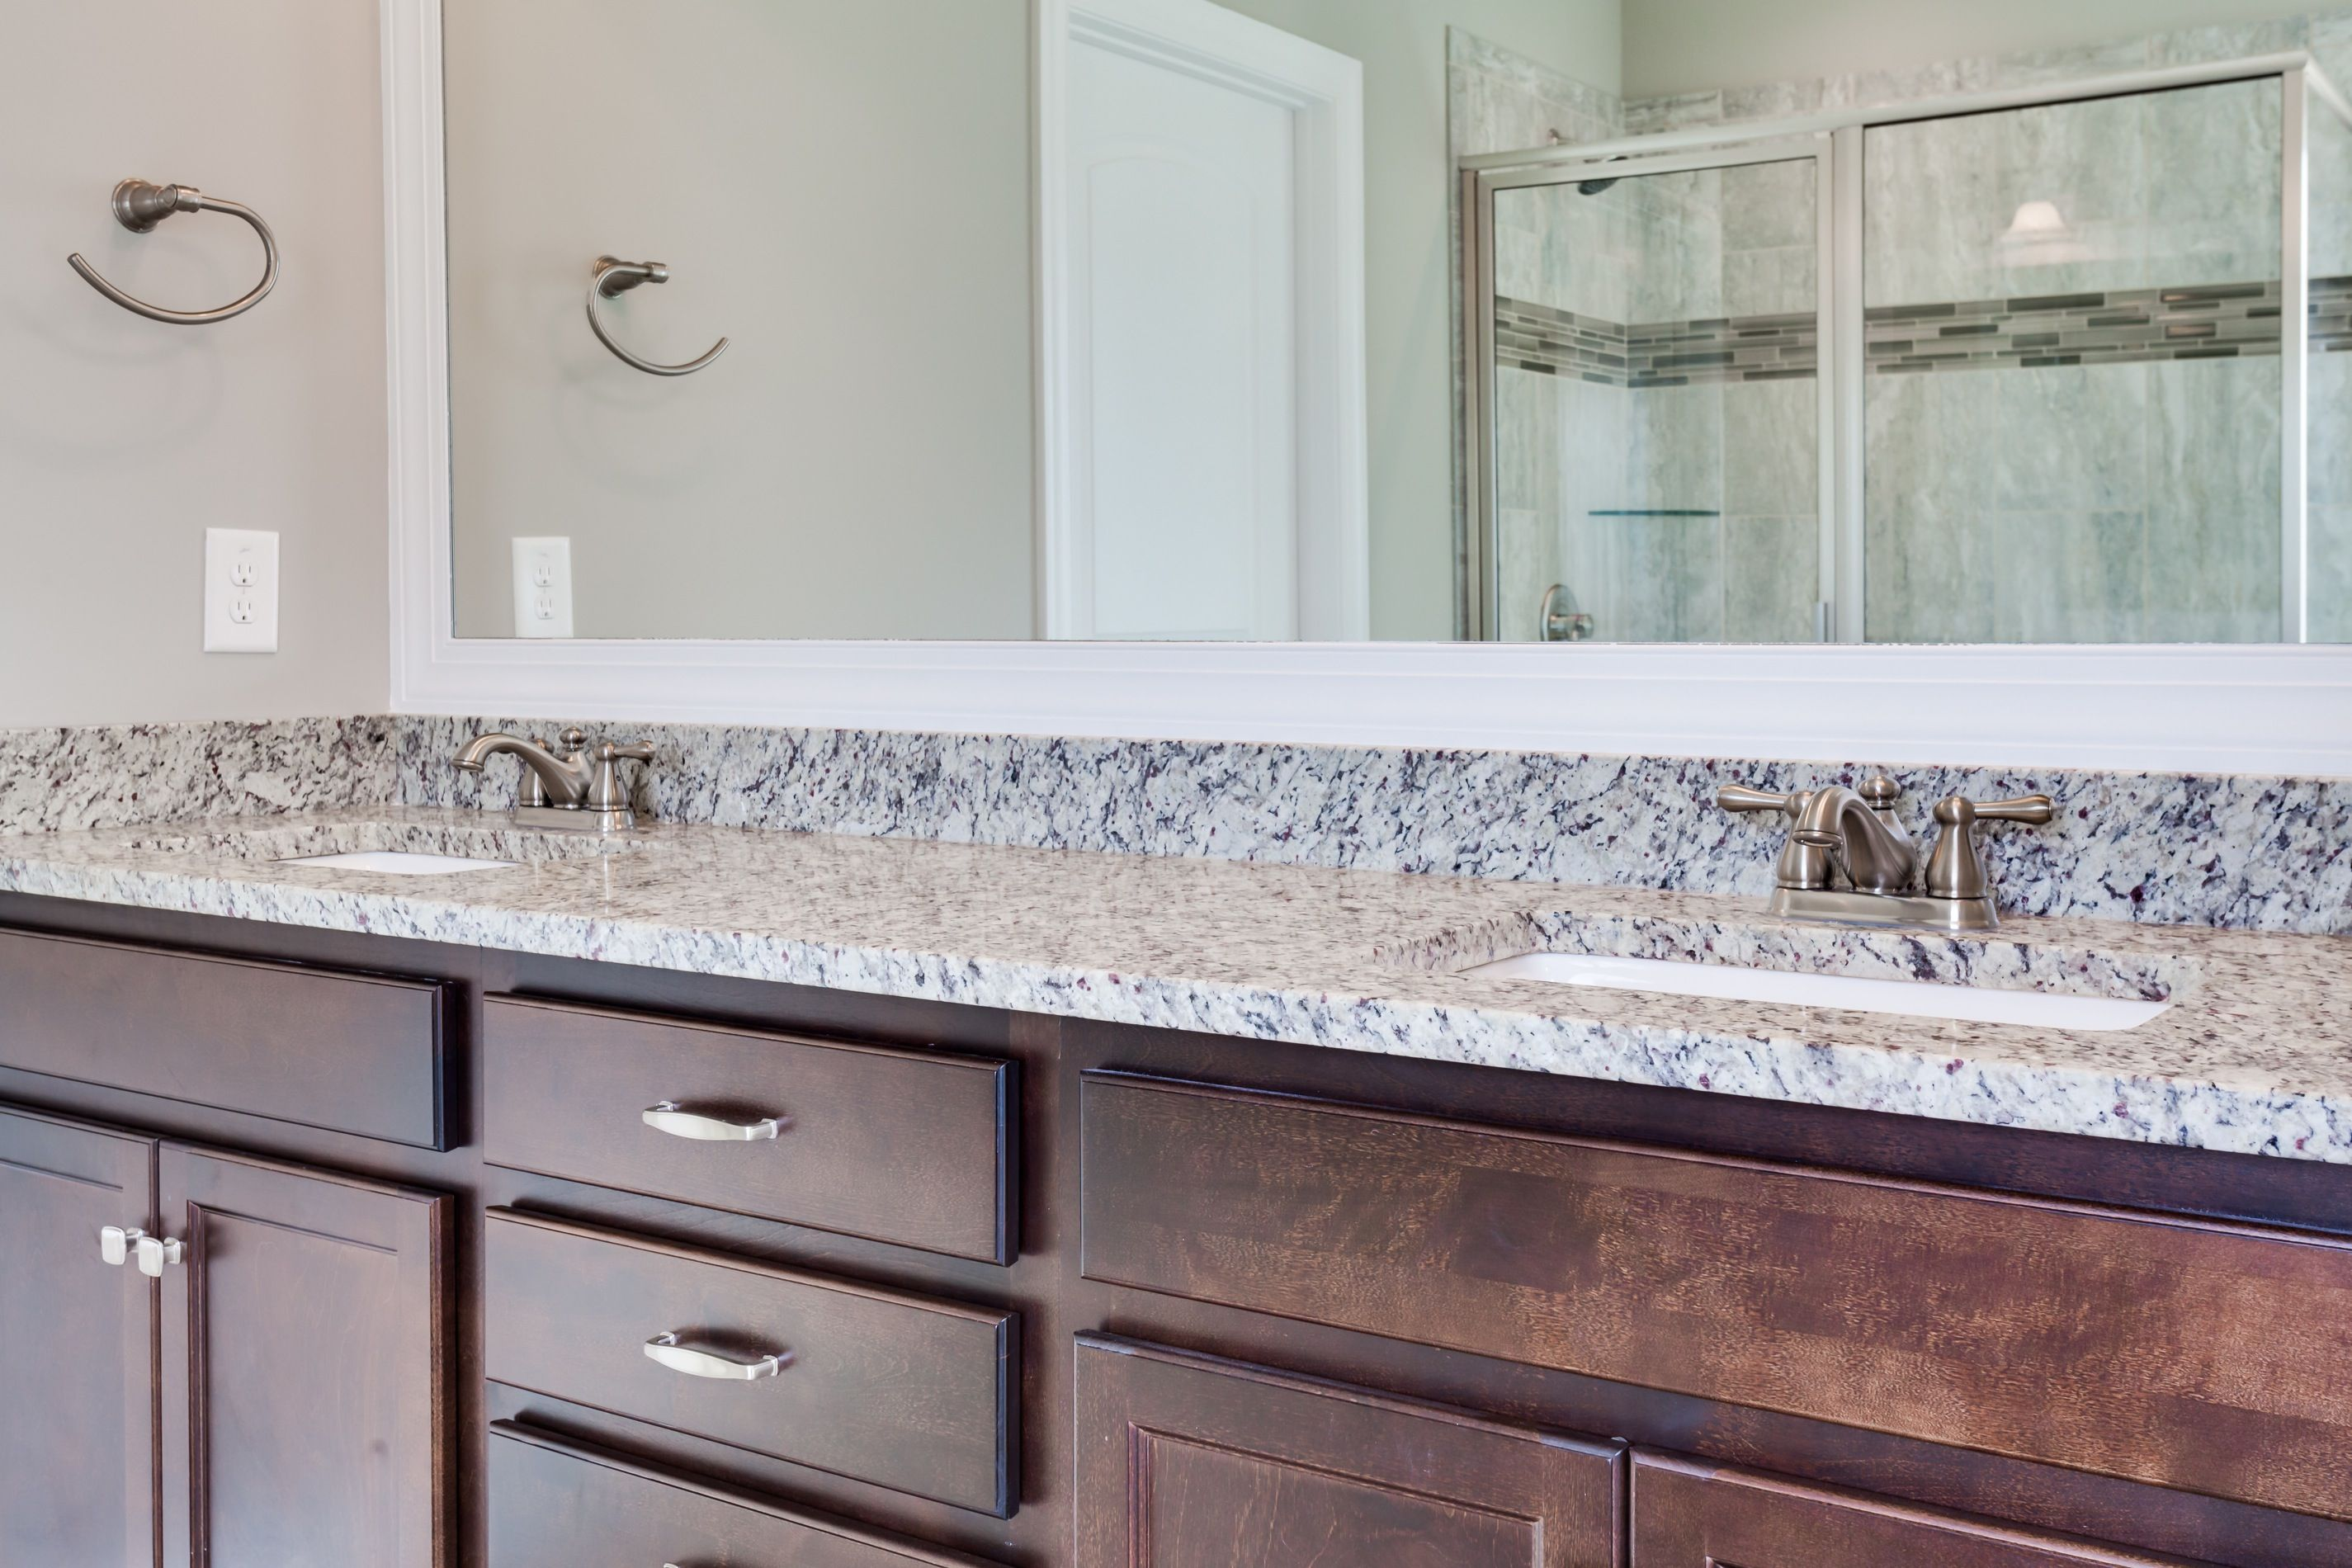 Use The Countertop Edge Visualizer To Find The Right Edge For Your Intended Style Or Purpose Countertop Amanzigra With Images Countertops Tool Design Beautiful Bathrooms